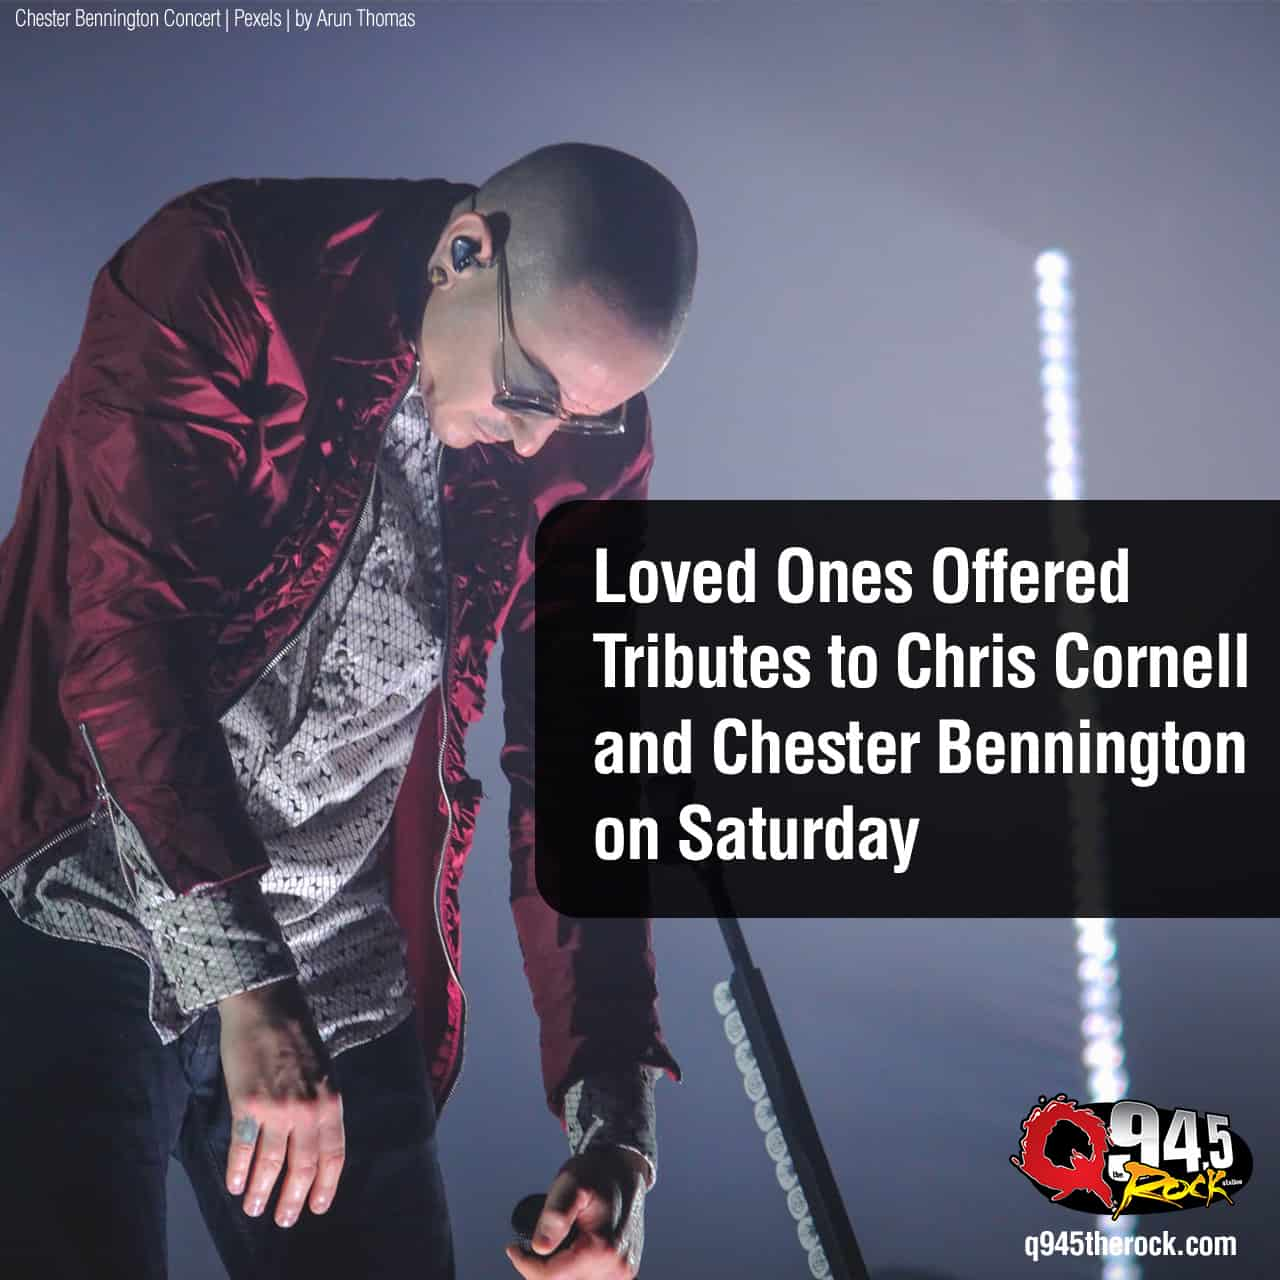 Loved Ones Offered Tributes to Chris Cornell and Chester Bennington on Saturday